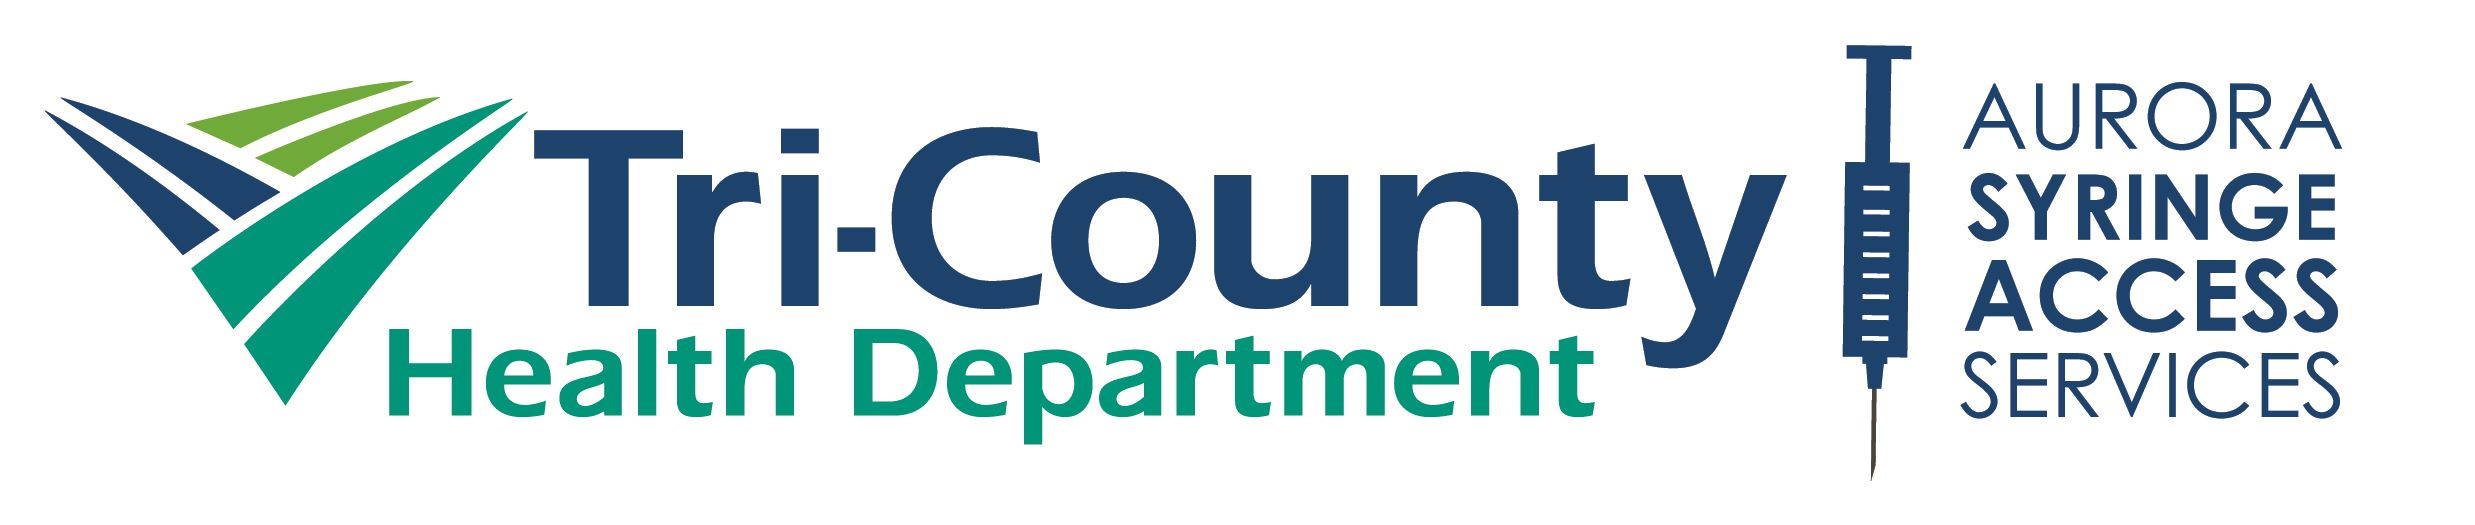 Tri-County Health Department - Aurora Syringe Access Services Logo